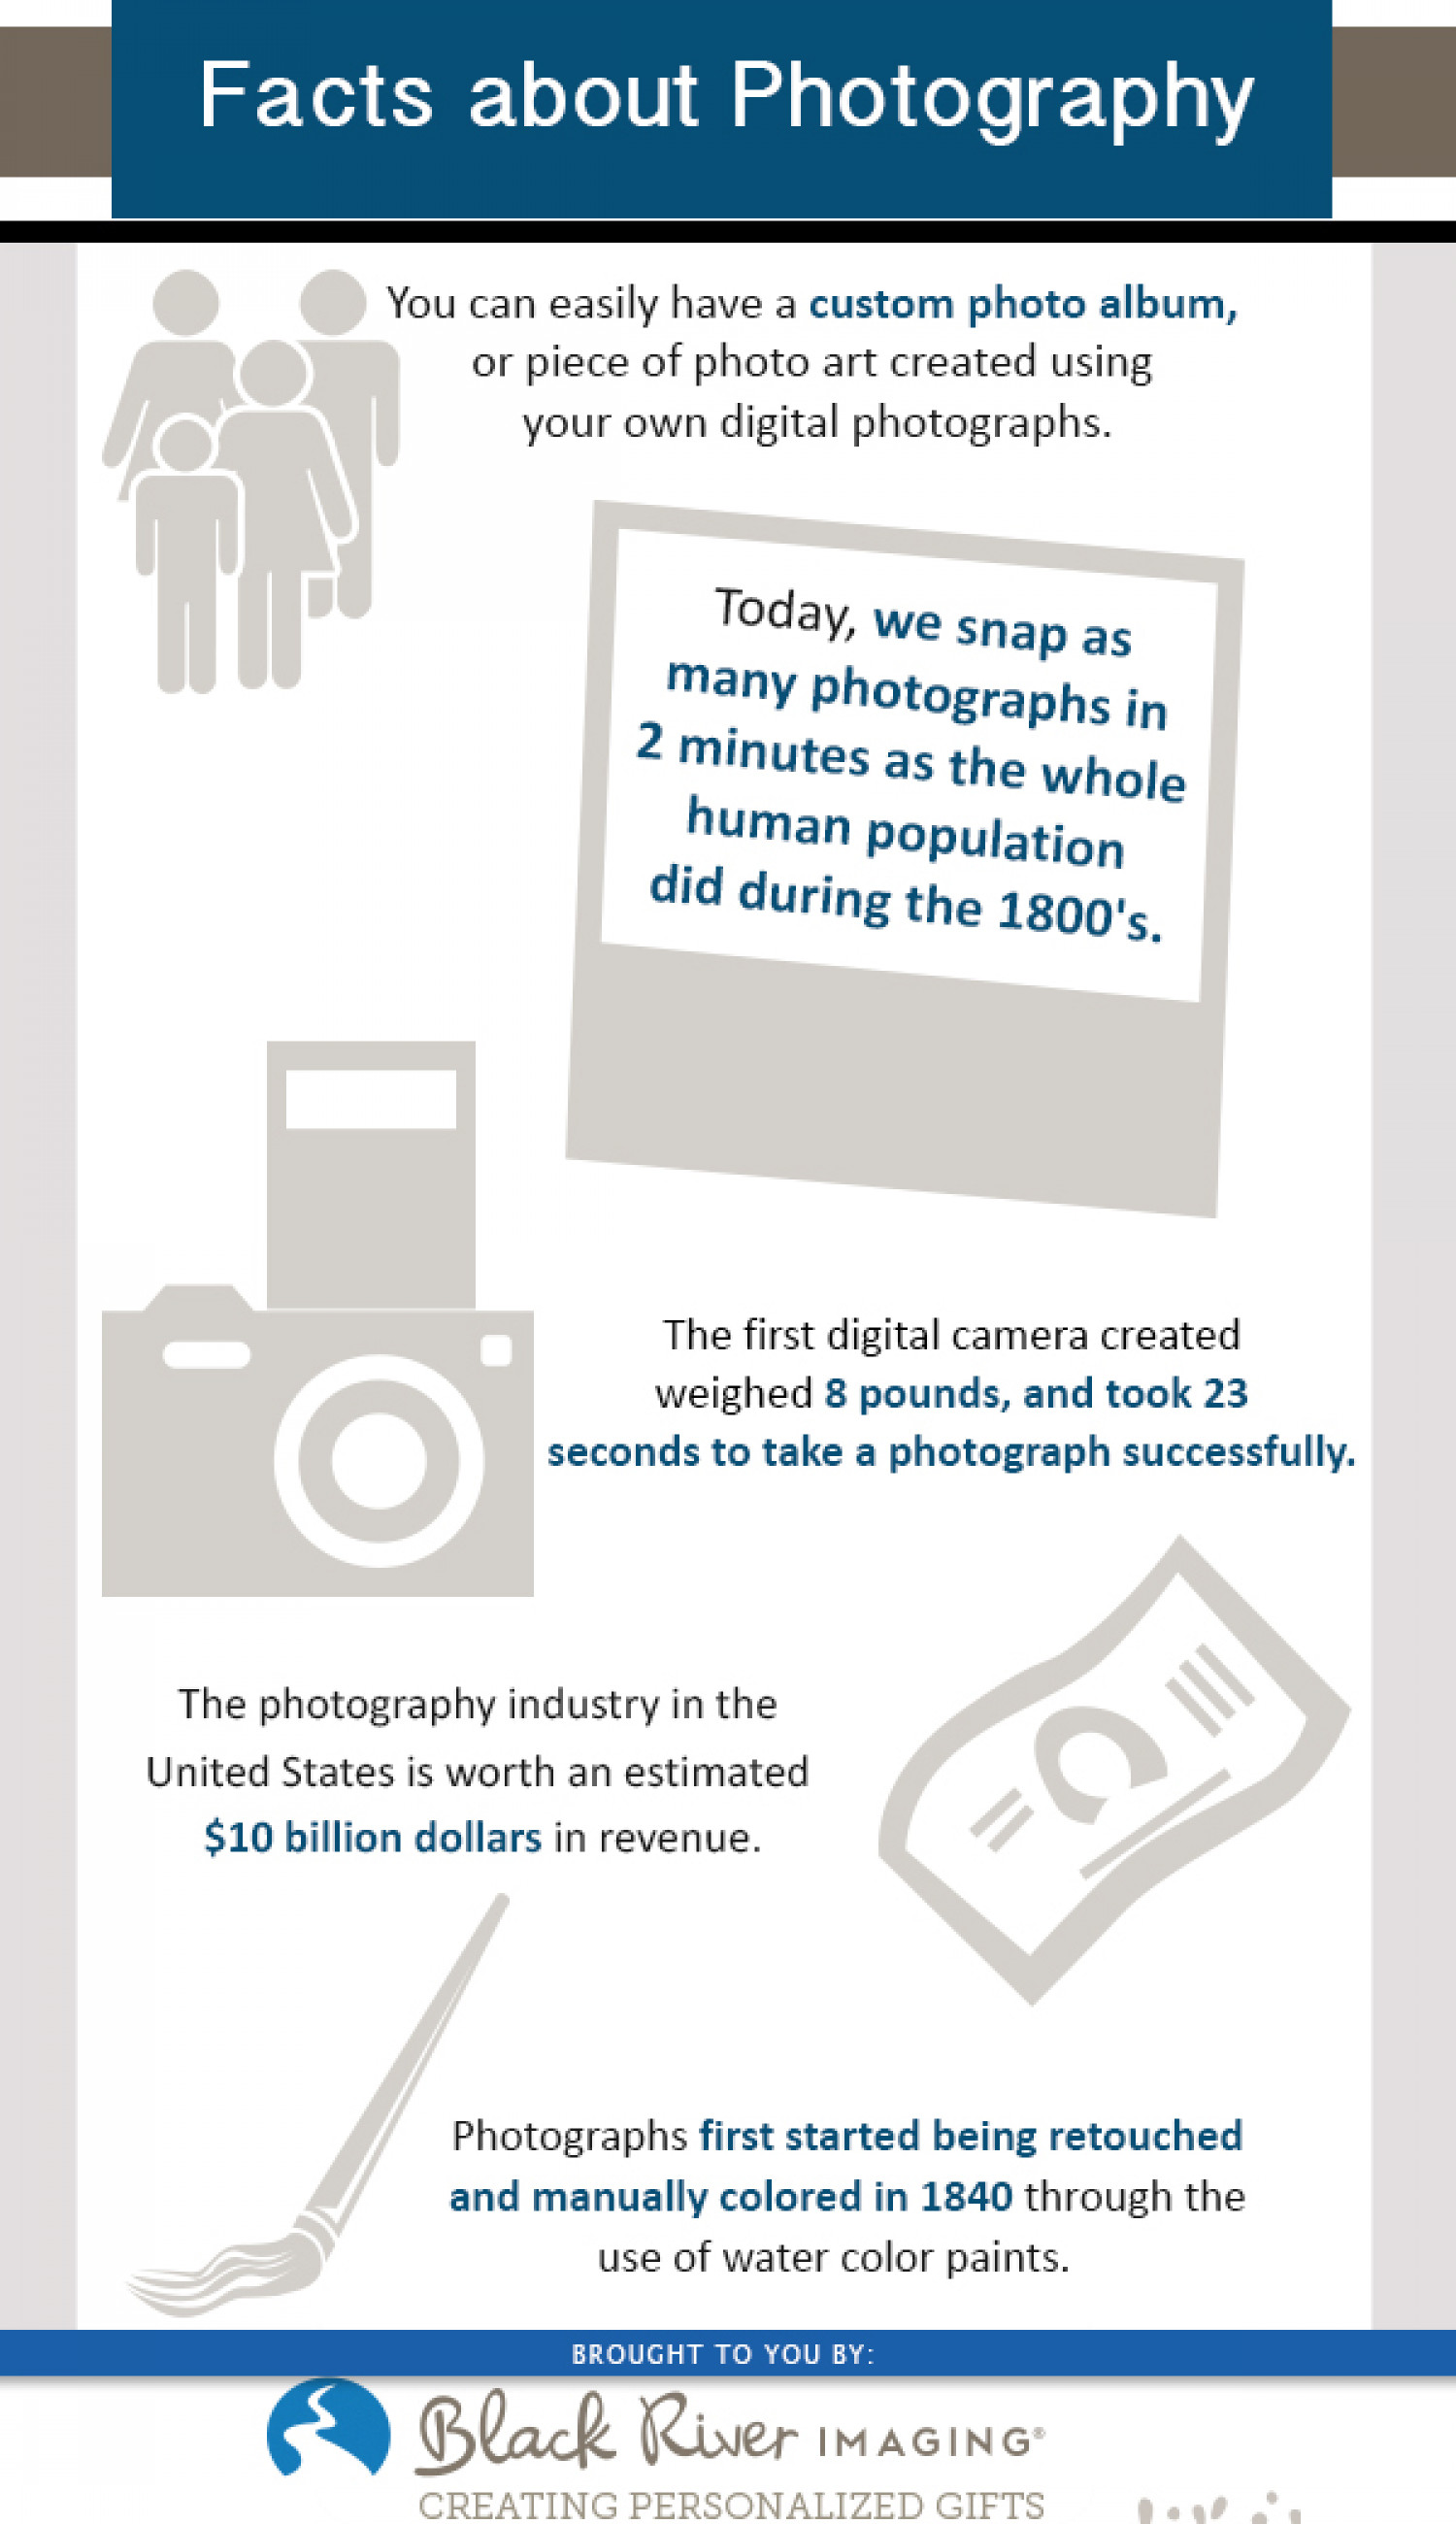 Facts About Photography Infographic